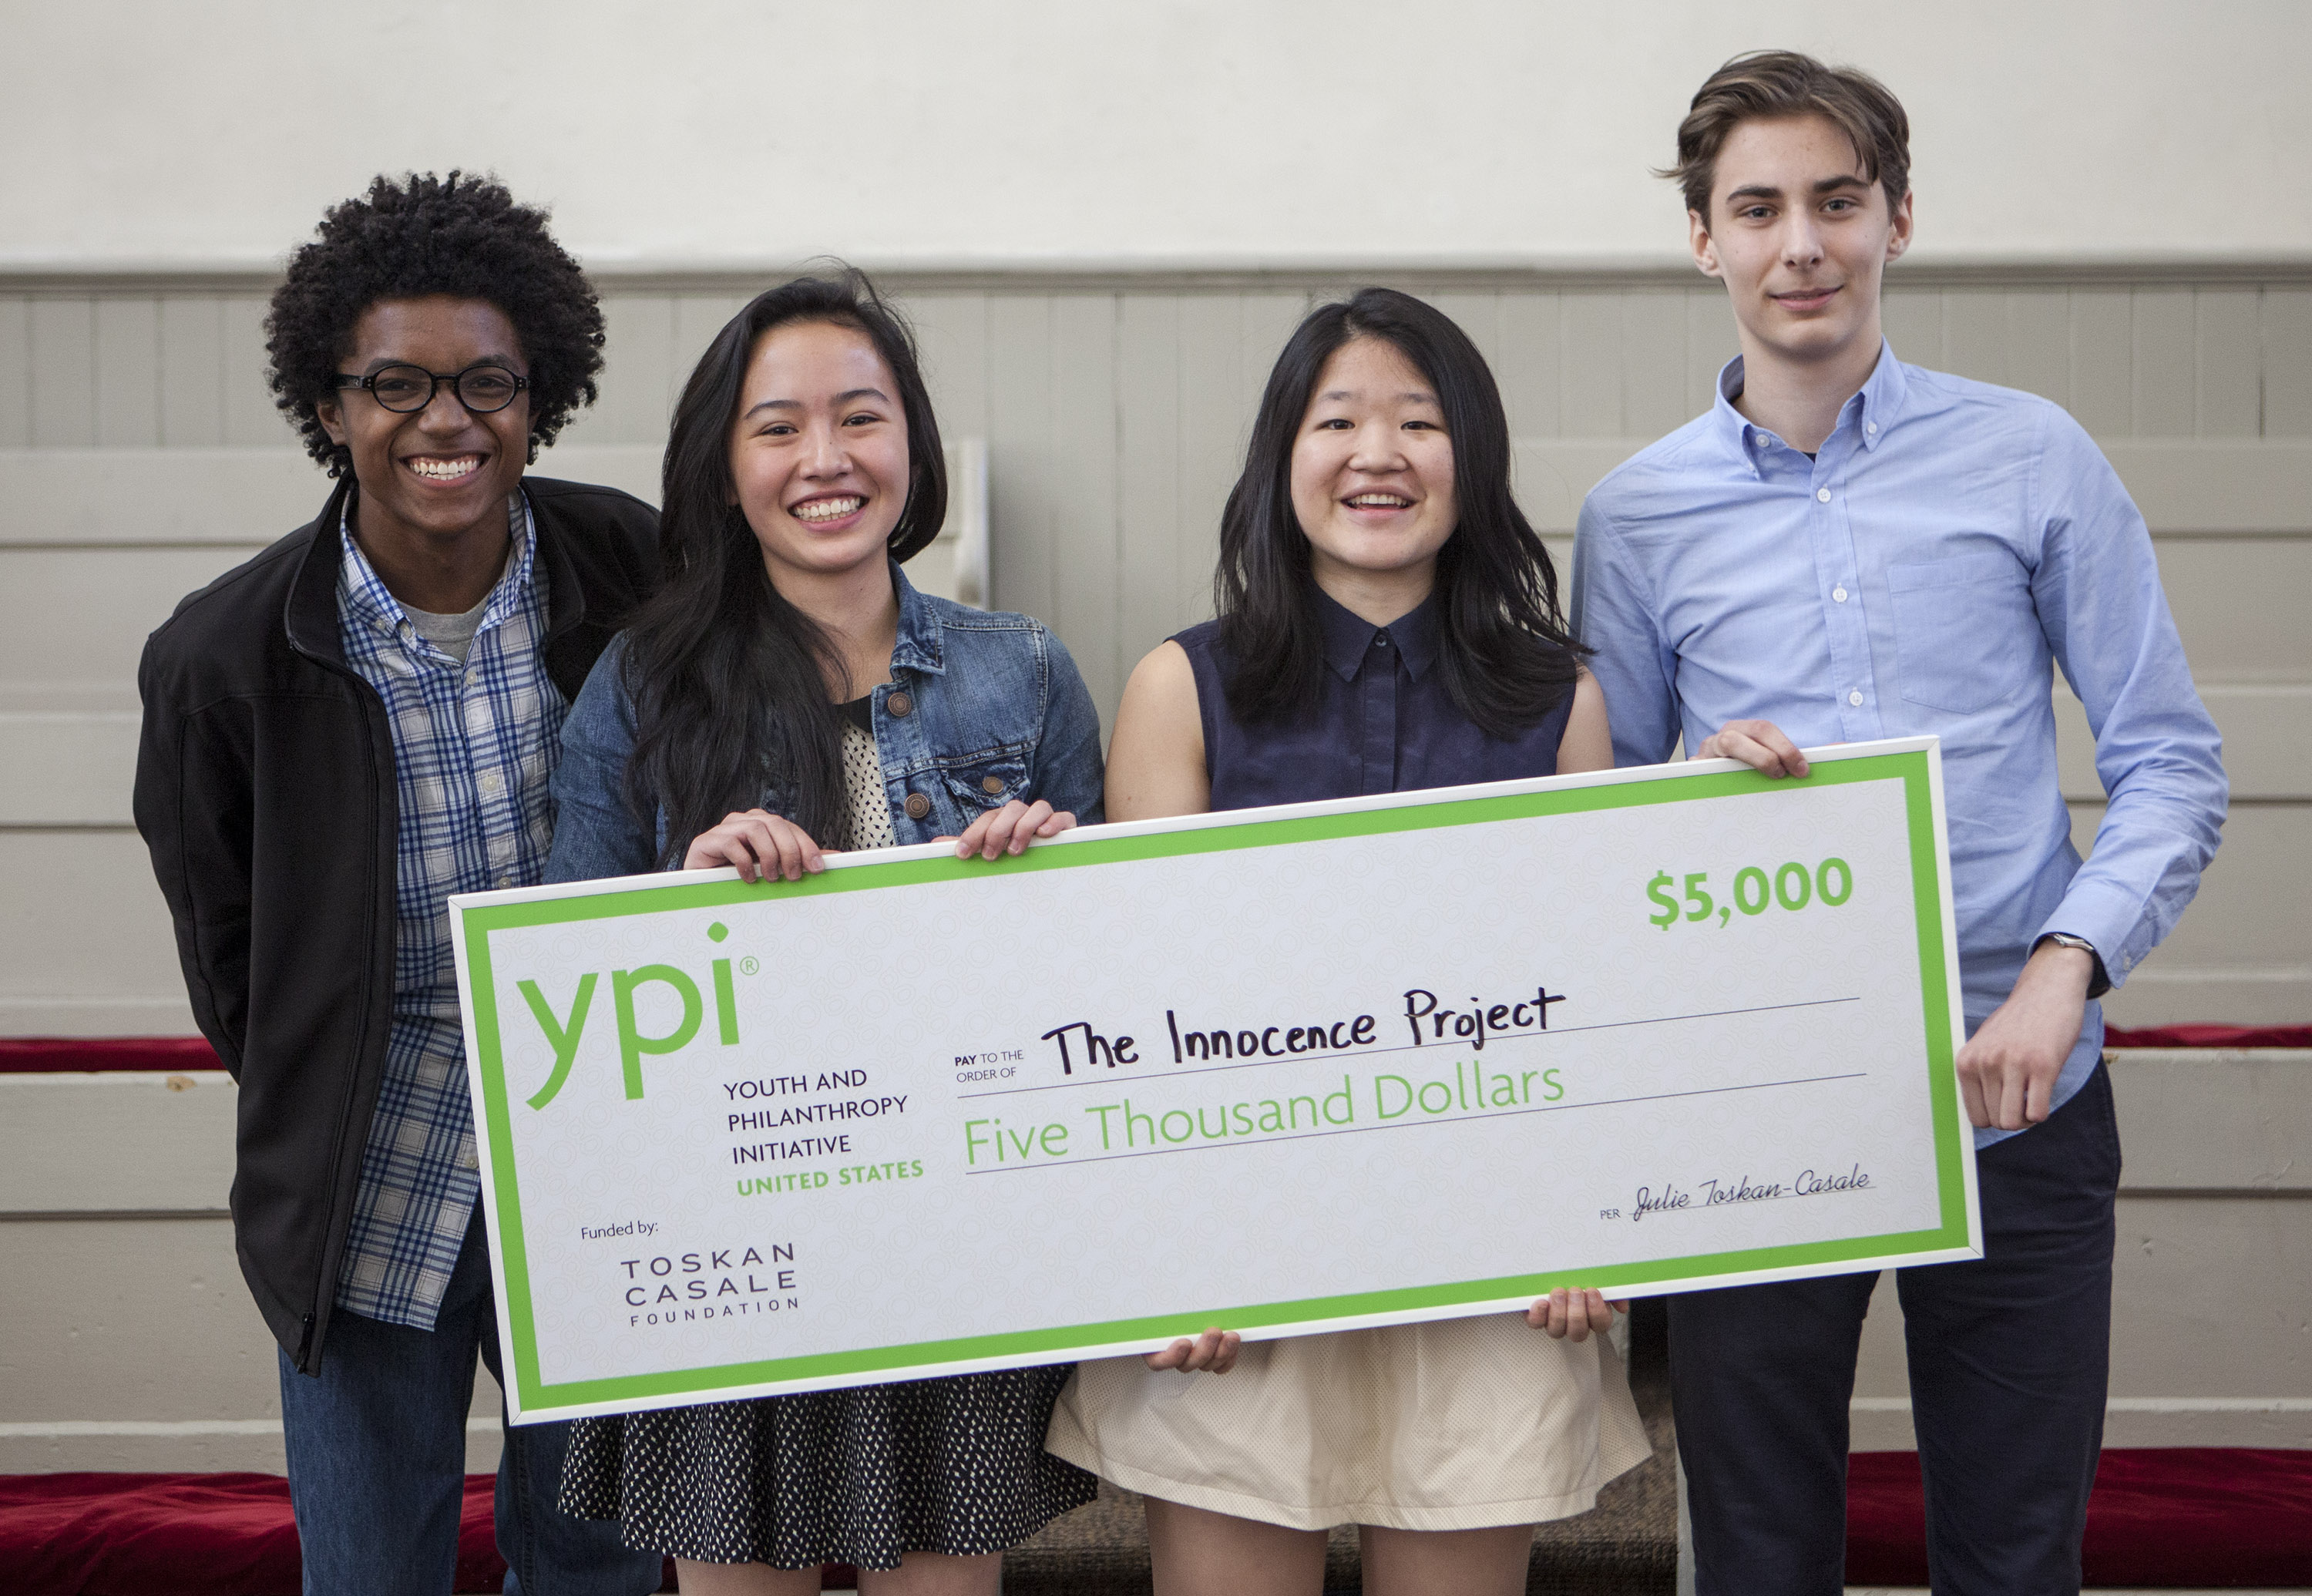 Four students hold up an oversized novelty cheque for $5000 made out to the Innocence Project.